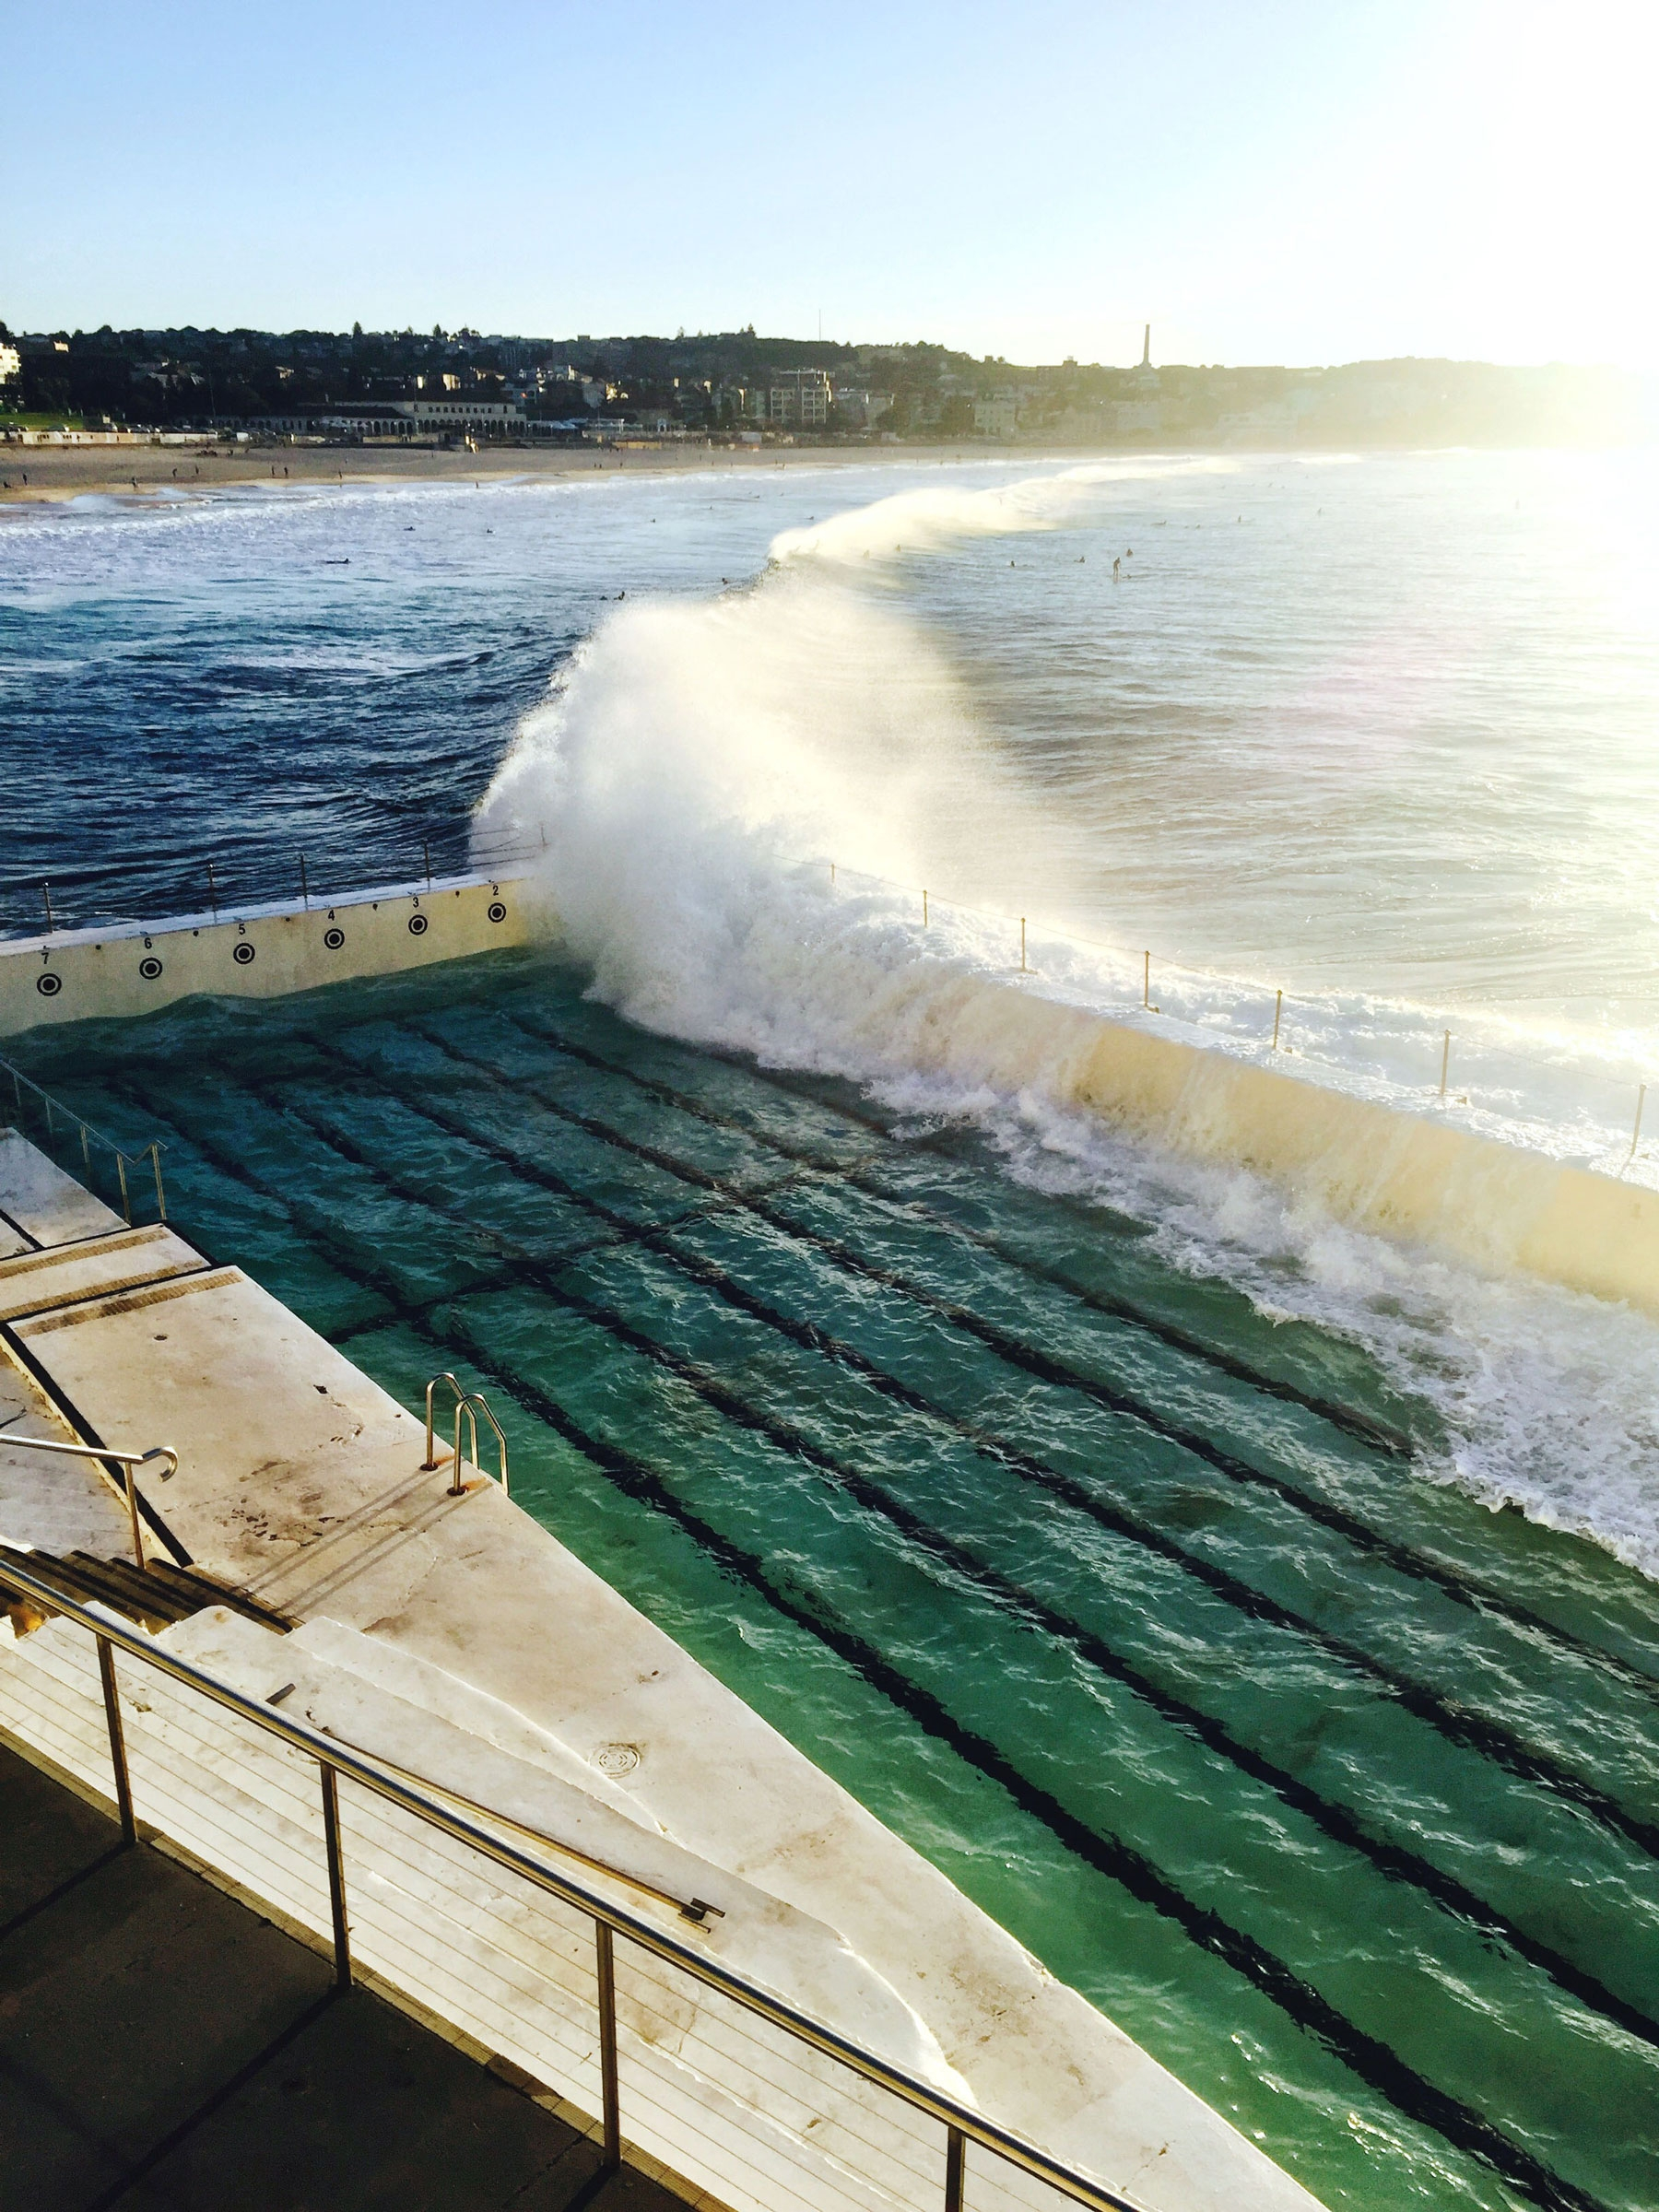 Waves crashing into the half full pool at Bondi Icebergs, April 2016